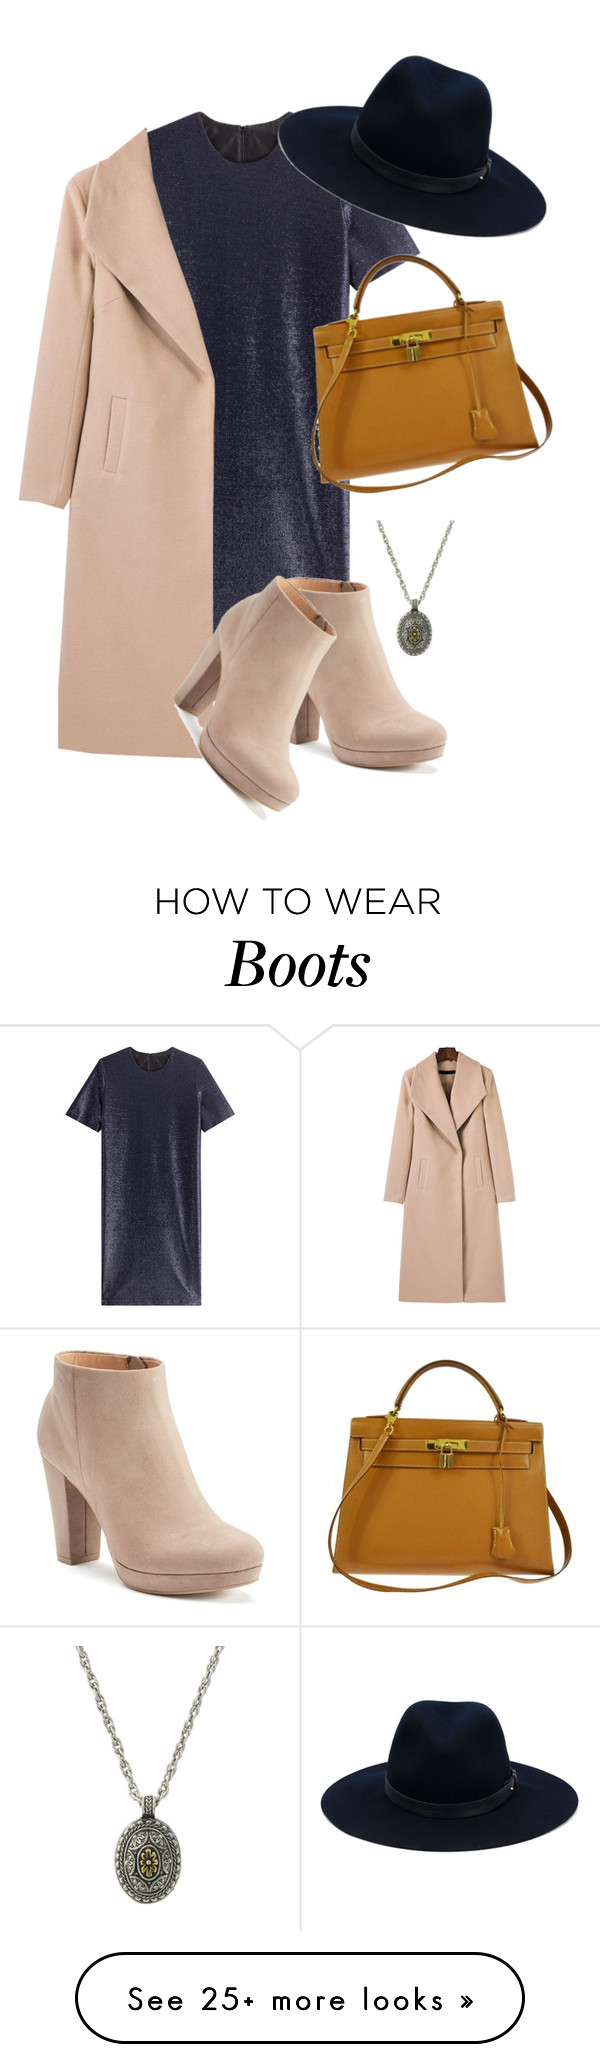 """""""Boots all time"""" by echarra on Polyvore featuring Jil Sander, LC Lauren Conrad, Hermès and rag & bone"""